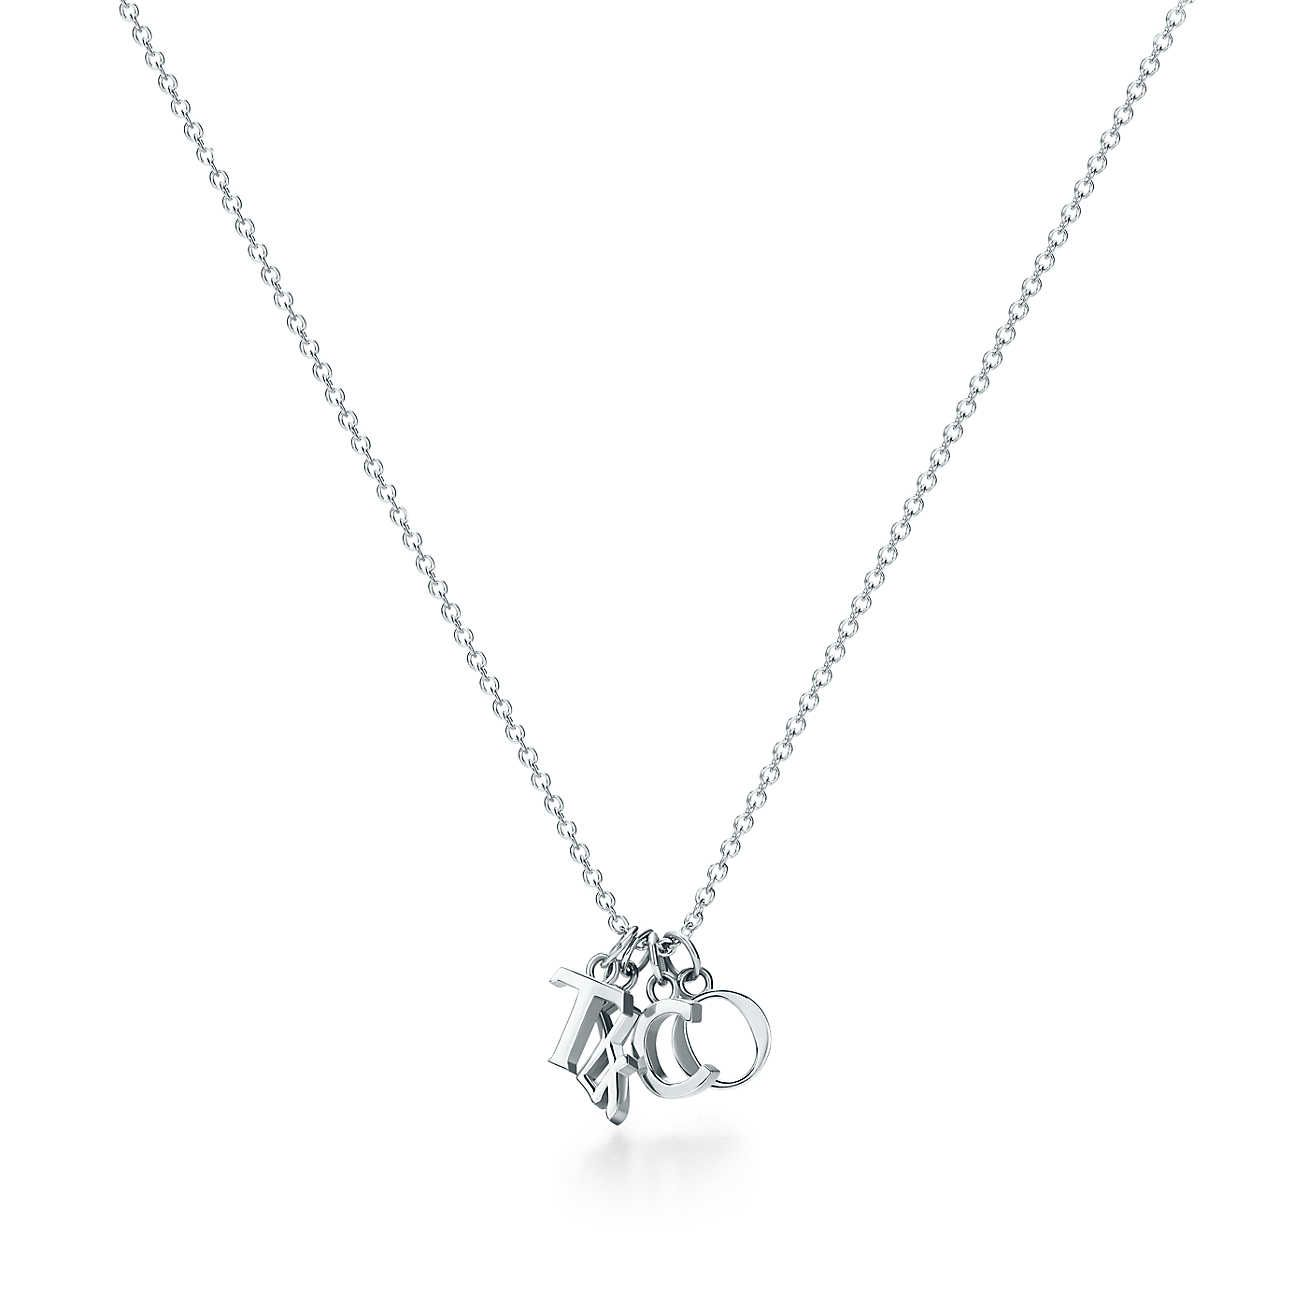 22dfab9e6 Tiffany Charms Love Notes T&CO. dangle pendant in sterling silver.